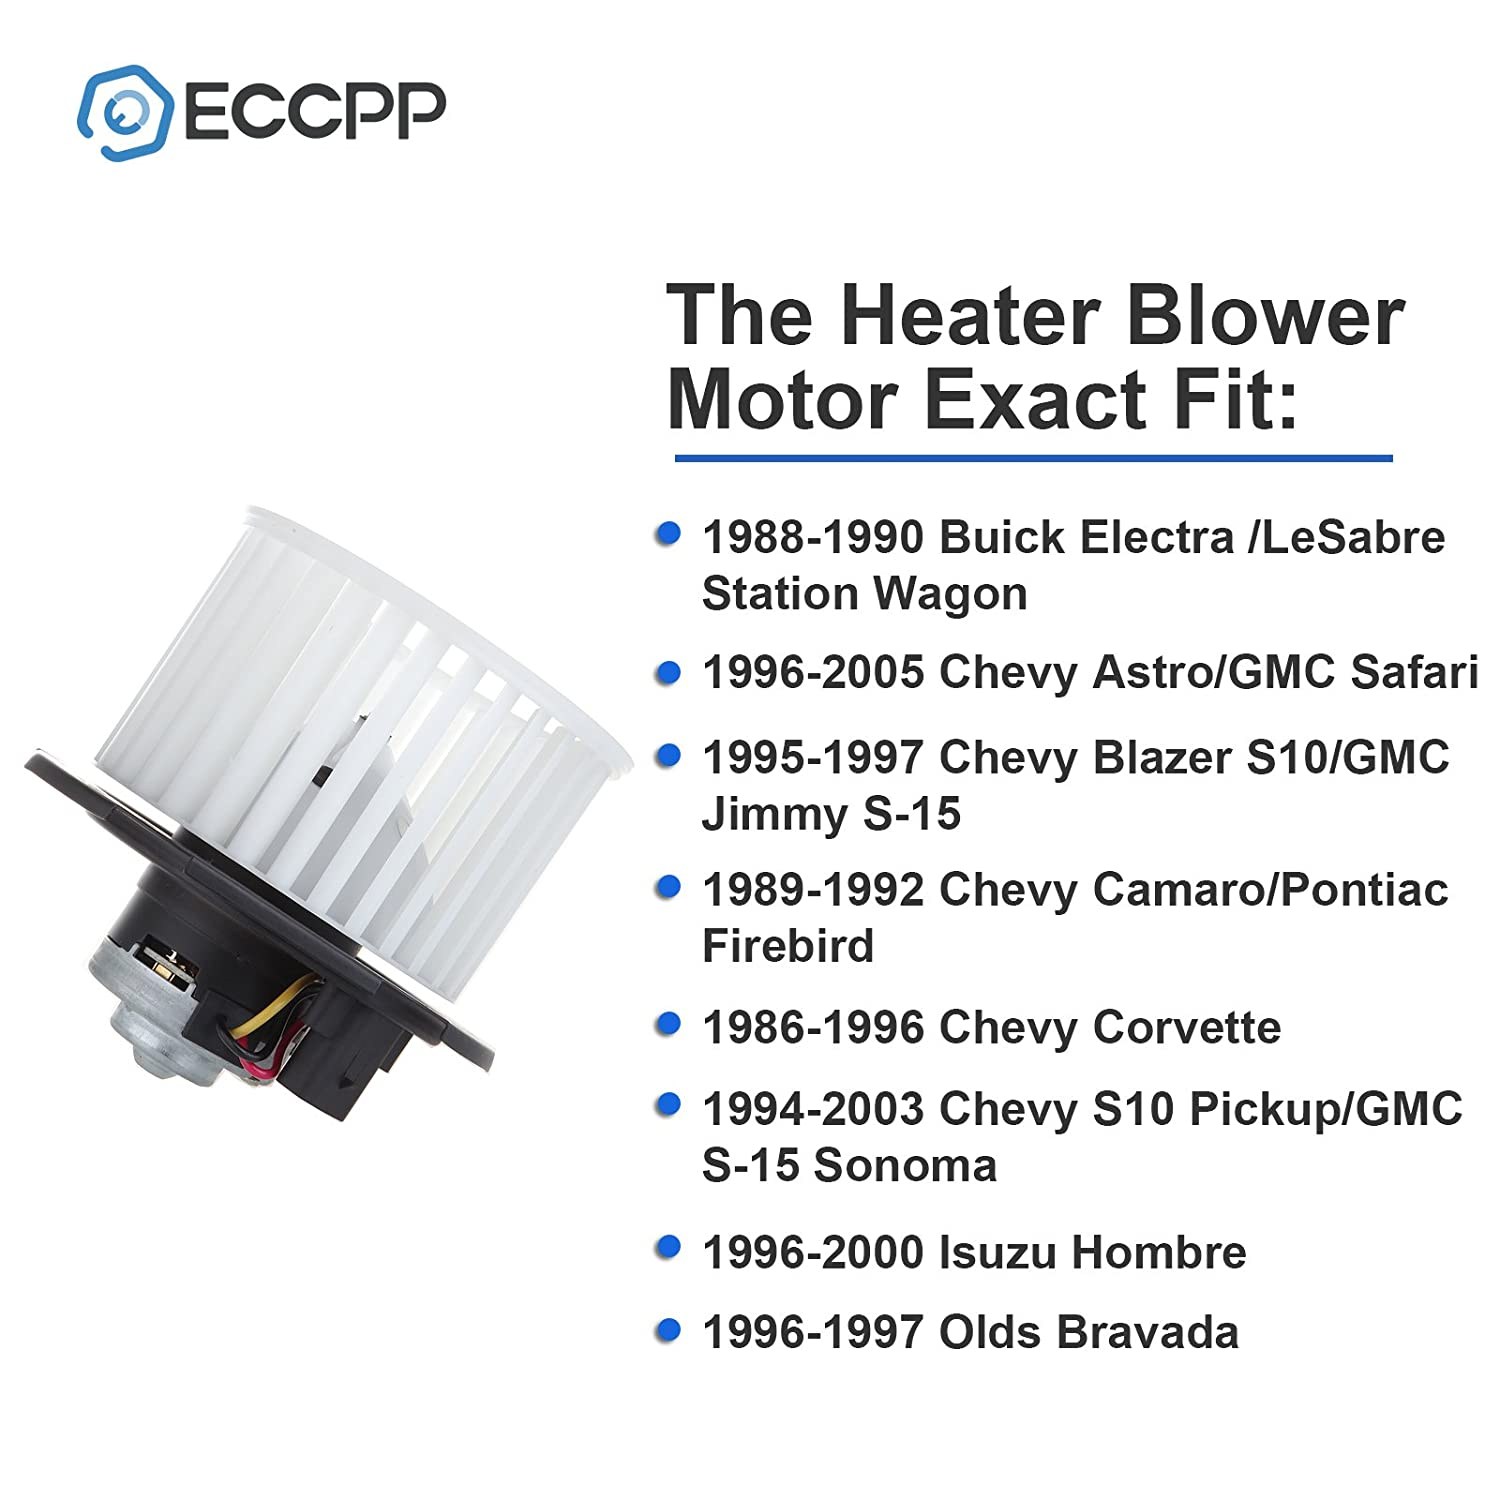 Abs Plastic Heater Blower Motor W Fan Cage Eccpp For 1996 S10 Blazer Wiring Diagram 1988 1990 Buick Electra Station Wagon Lesabre Automotive